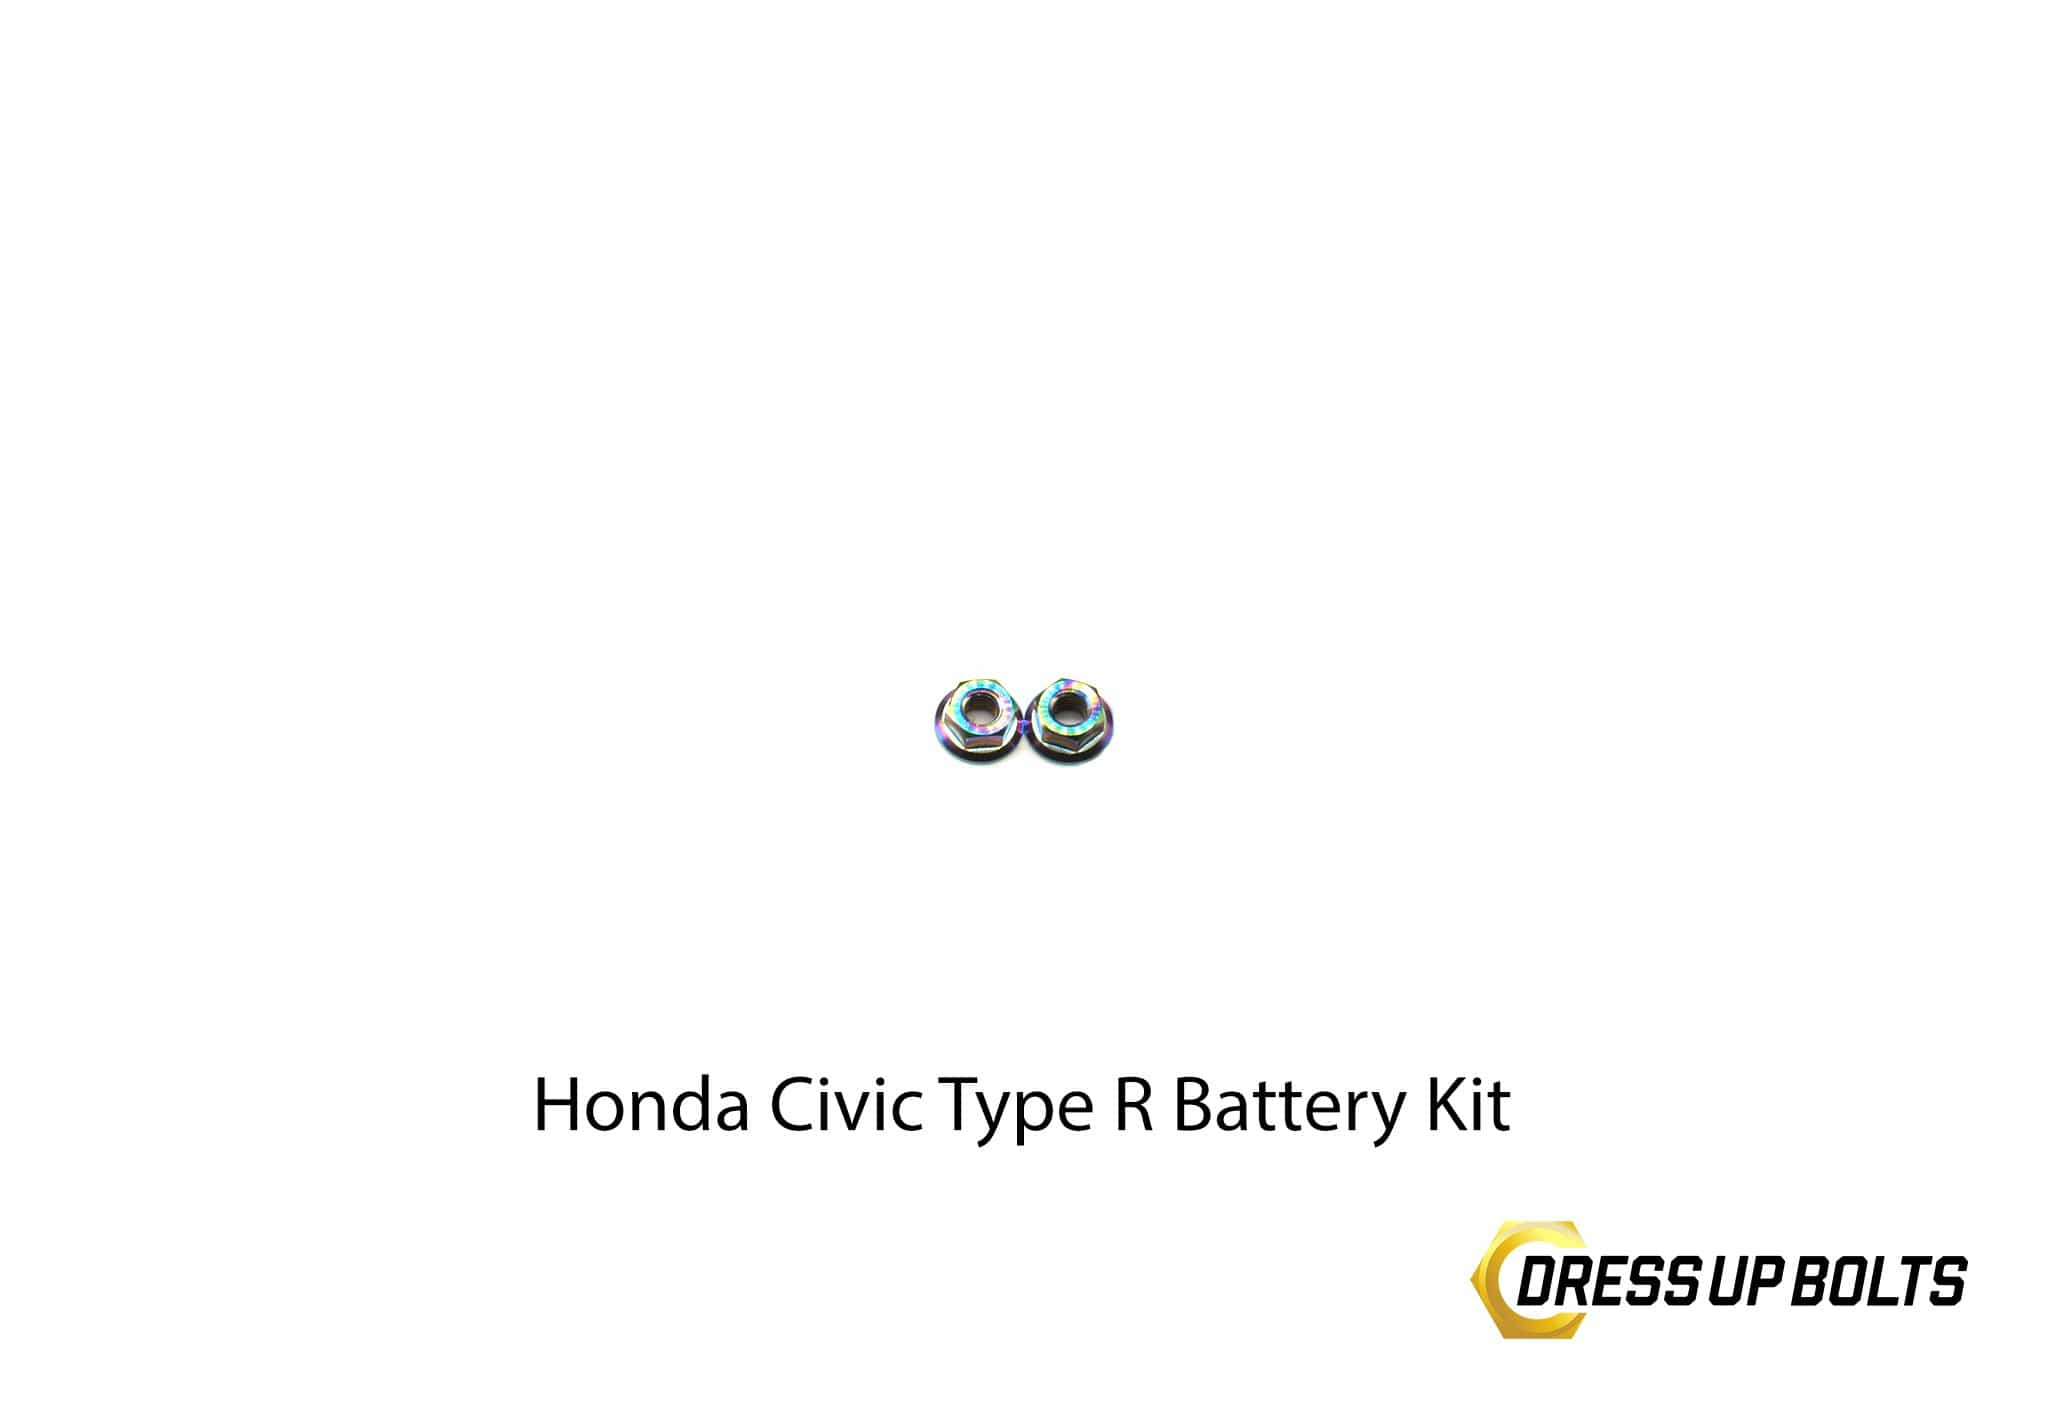 Honda Civic Type R (2017-2019) Titanium Dress Up Bolt Battery Kit